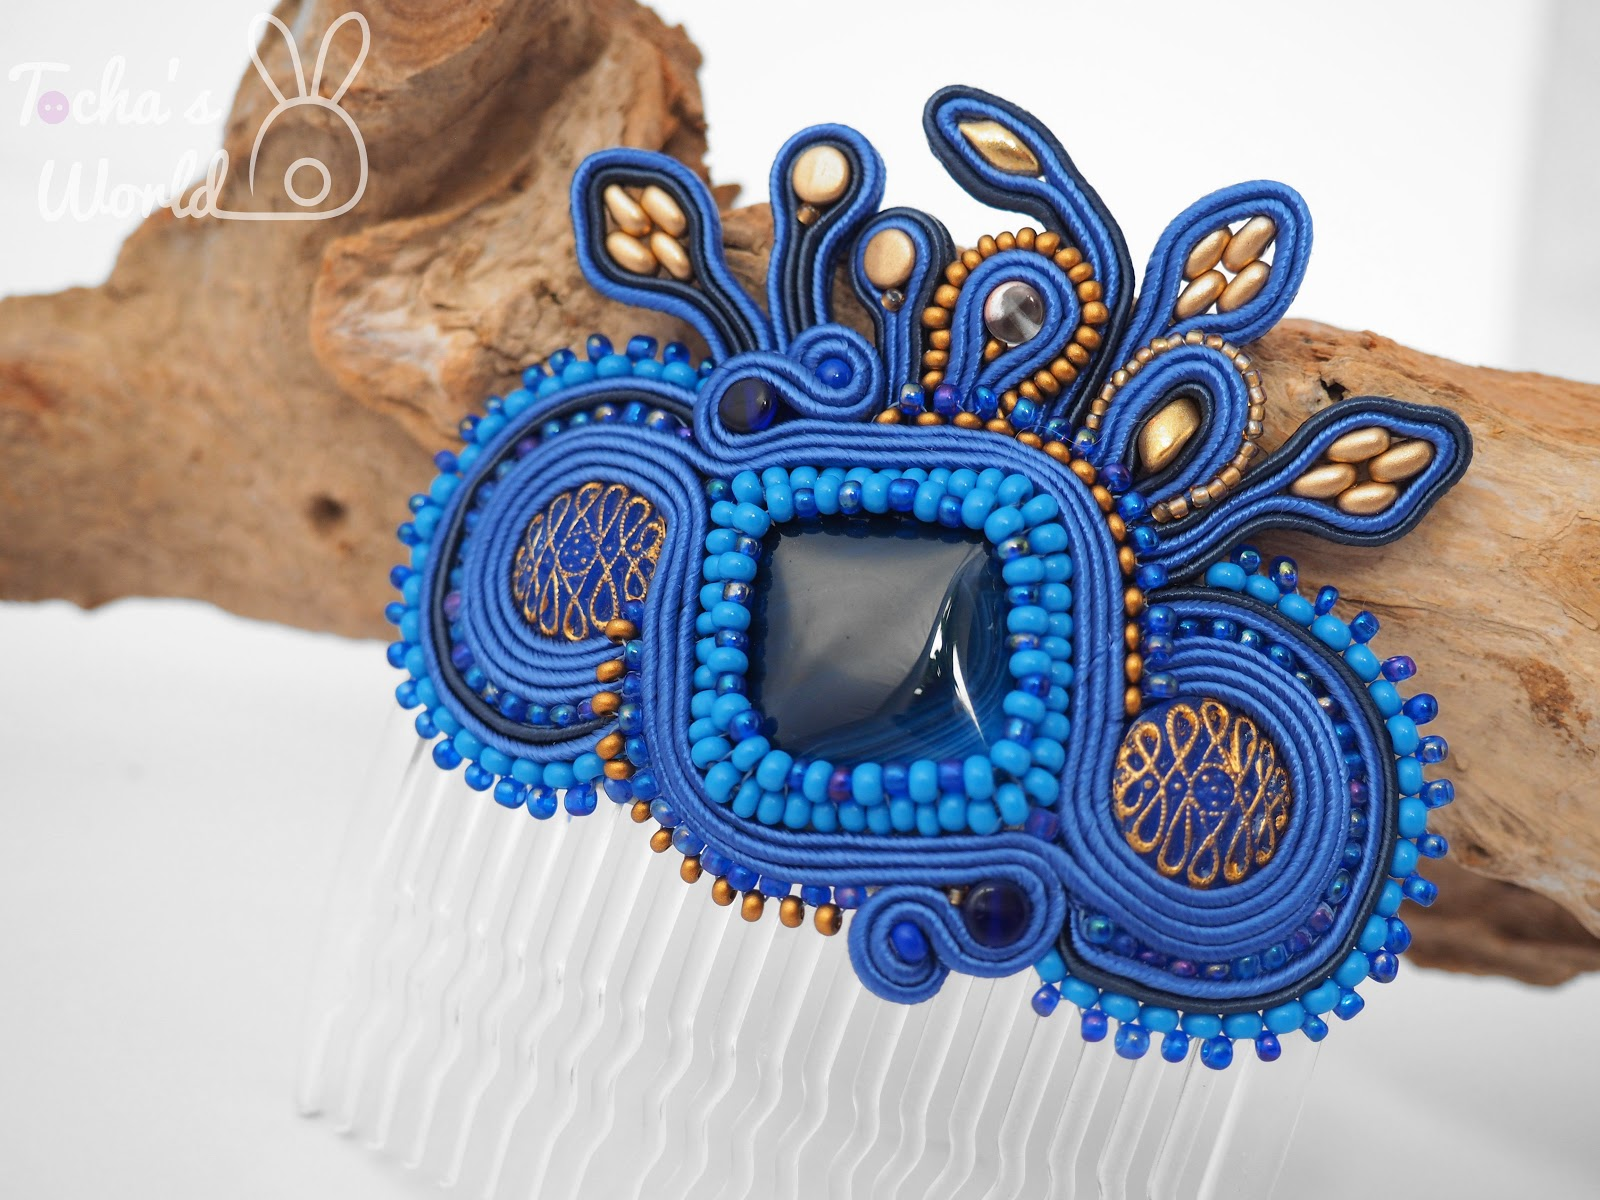 fascinator, comb, hair accessories, blue, gold, soutache, glass buttons, burlesque, agate, Toho, Preciosa Ornela, wedding, Tocha's World